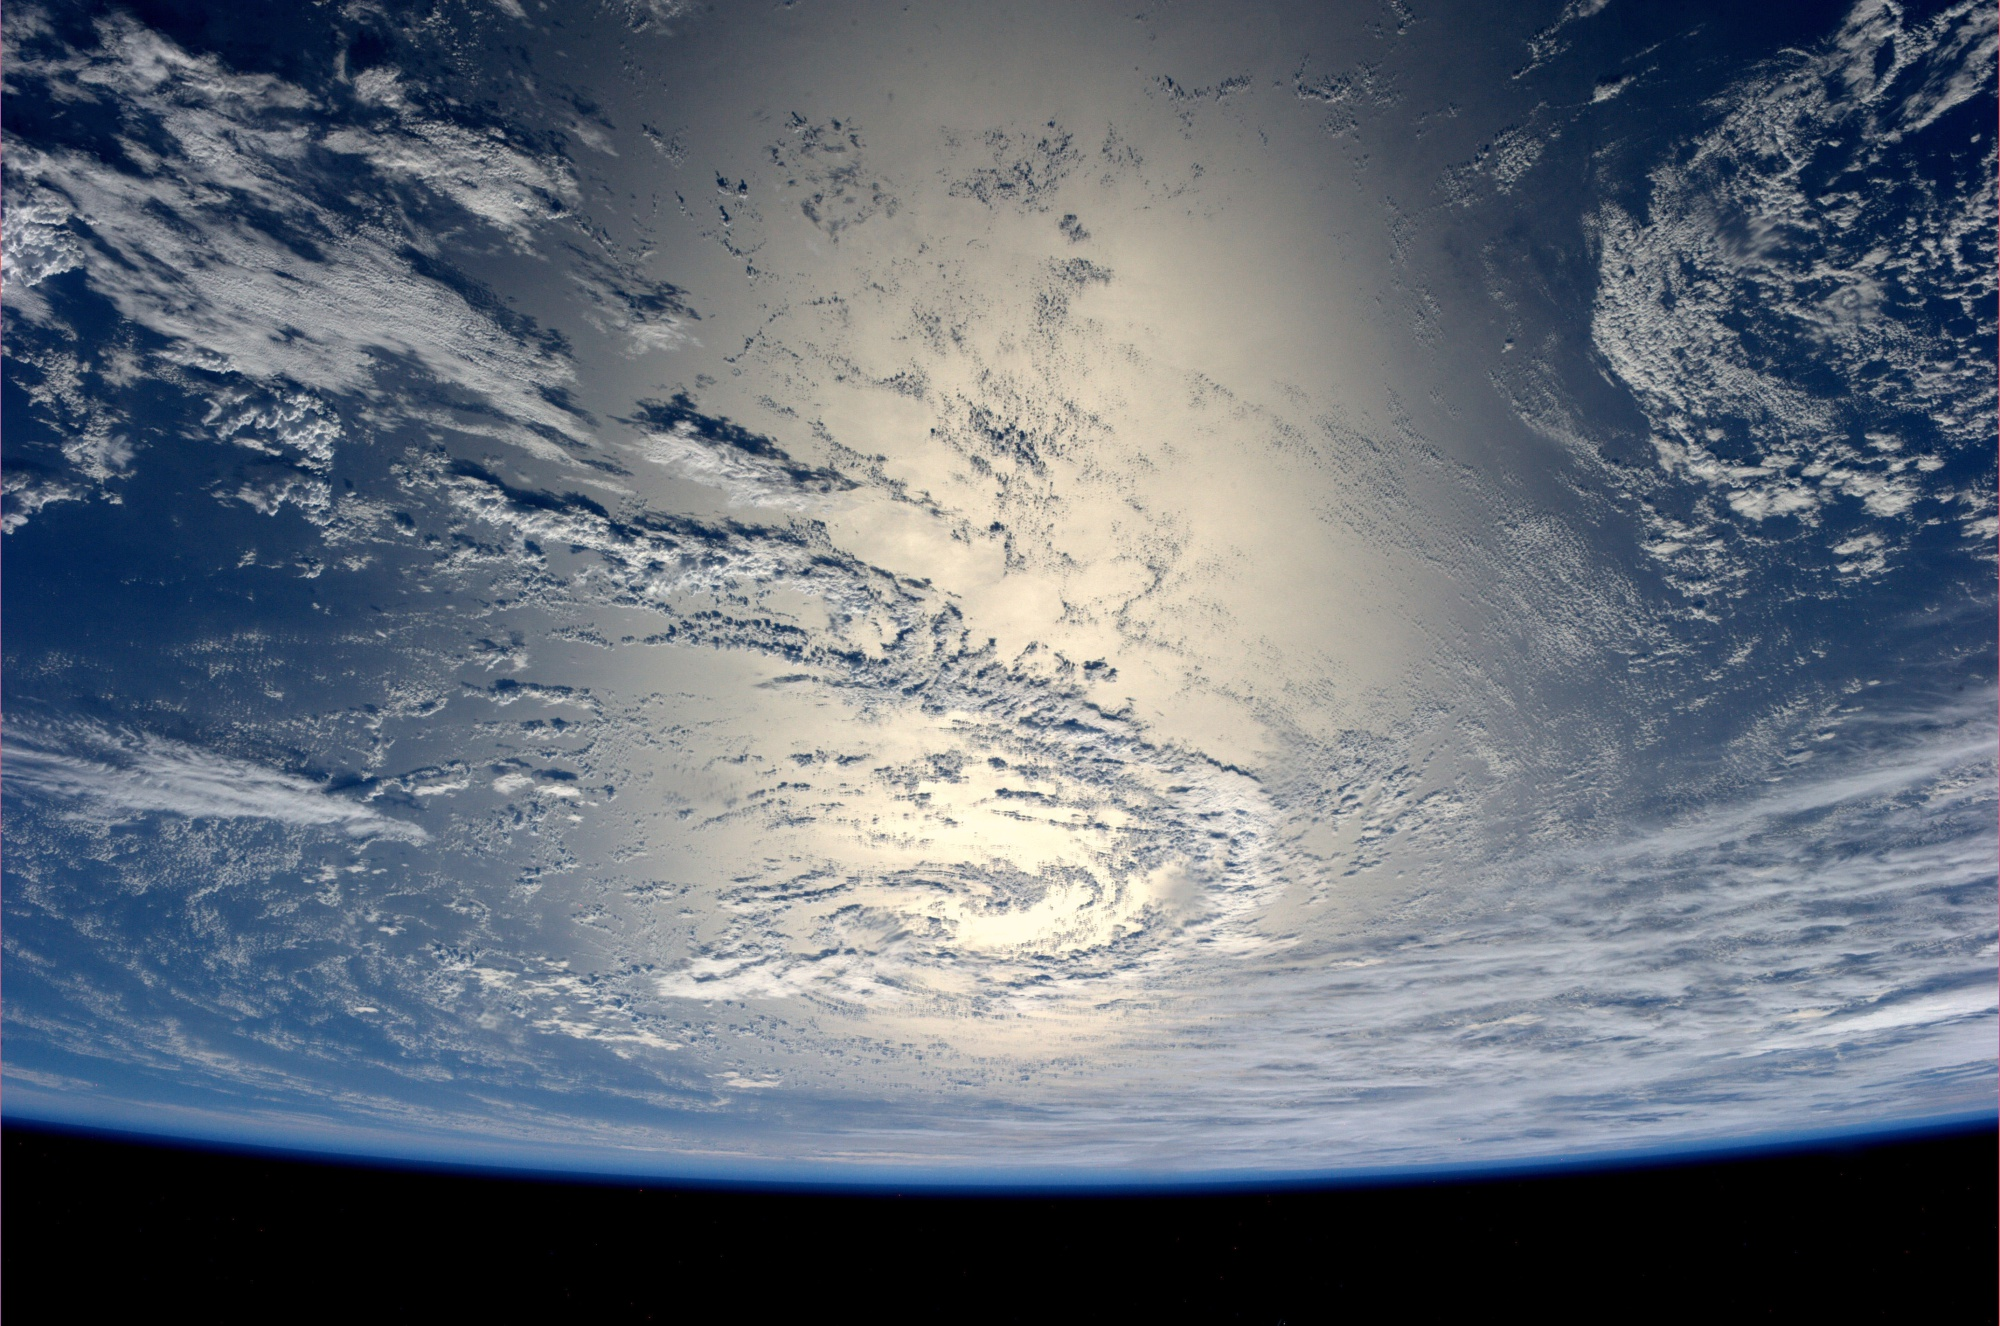 View from the International Space Station, where a photo shoot for a new Estee Lauder product will take place.